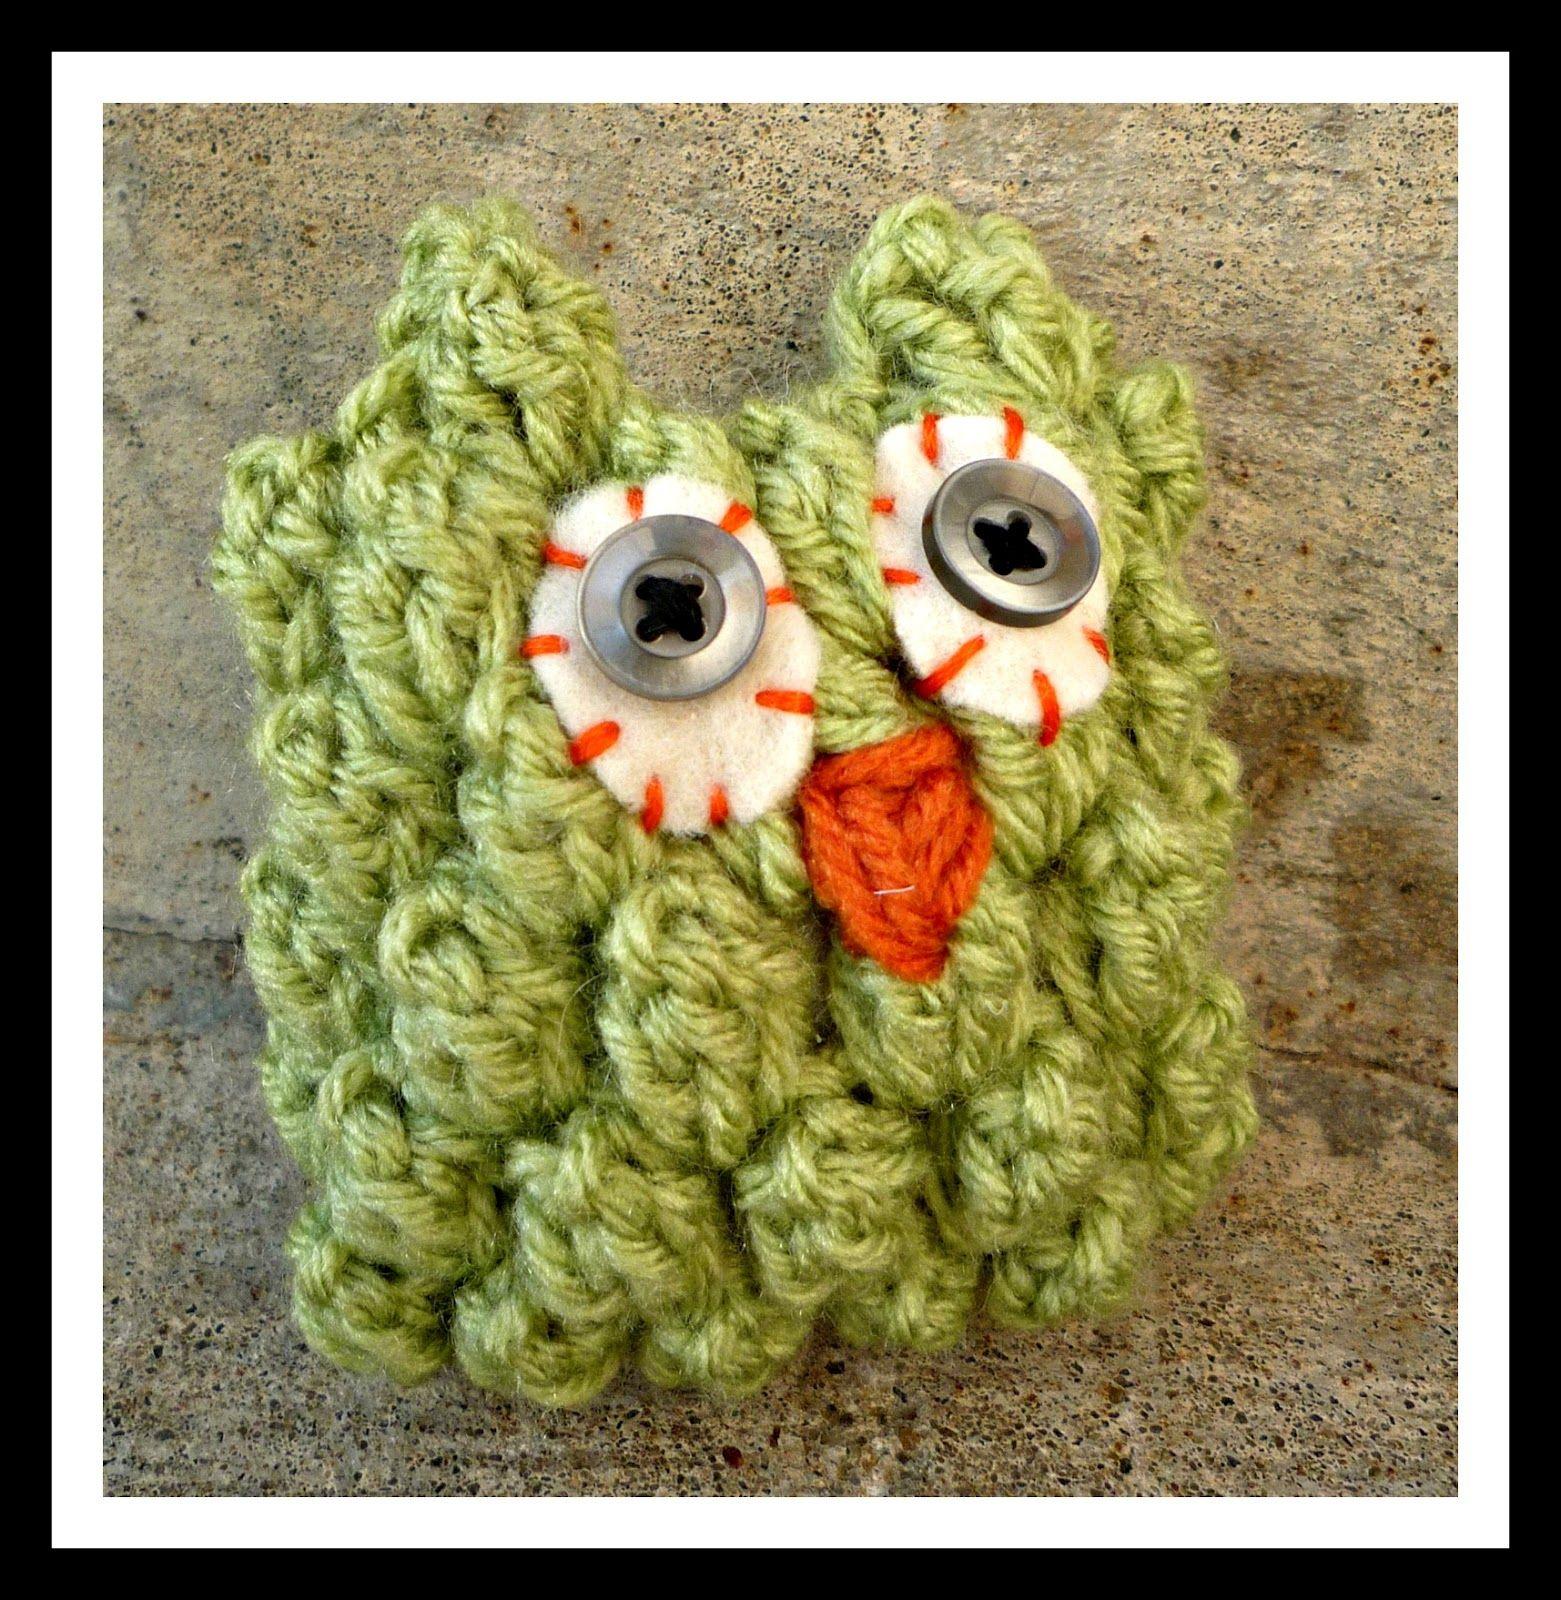 Crochet Bobble Owl - Tutorial | Crochet owls | Pinterest | 3d